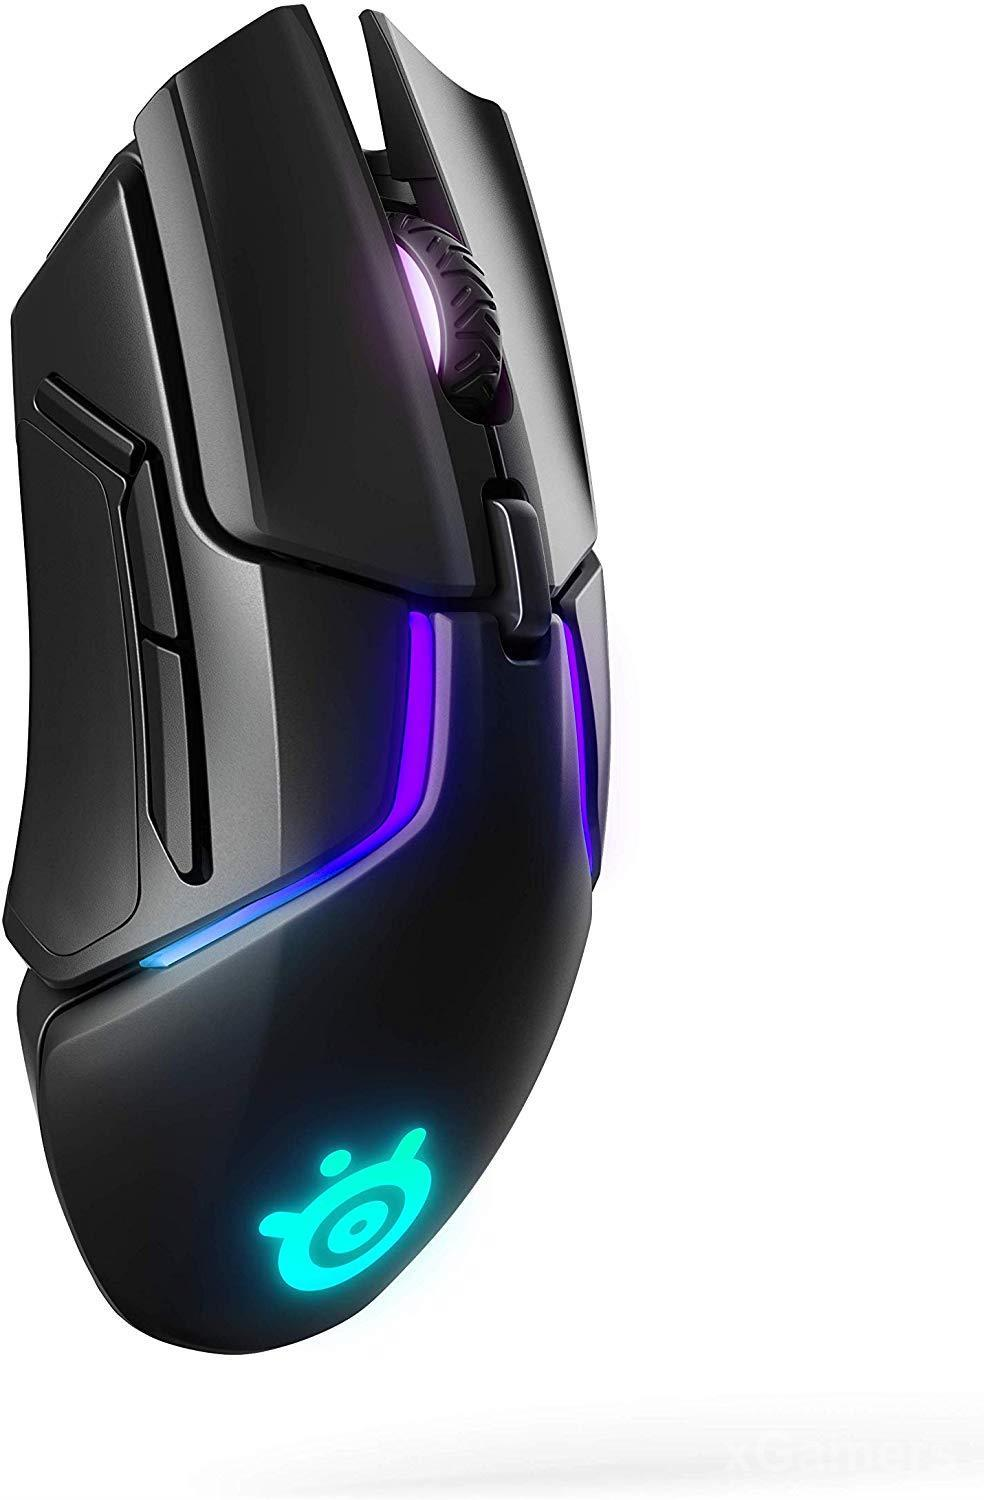 SteelSeries Rival 650 - Best Gaming Wireless Mouse